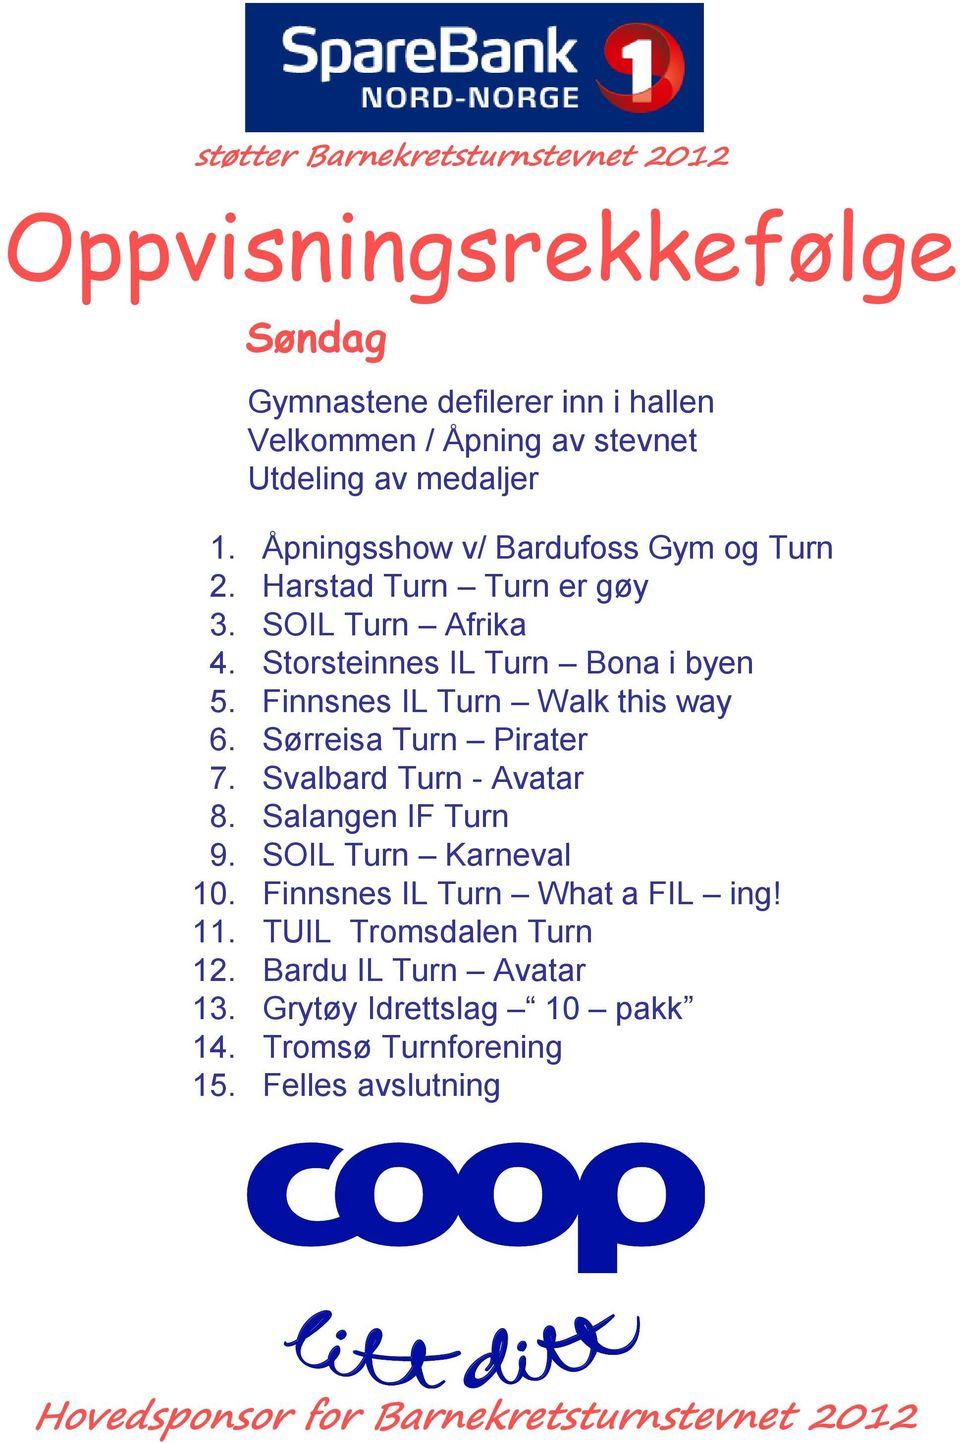 Finnsnes IL Turn Walk this way 6. Sørreisa Turn Pirater 7. Svalbard Turn - Avatar 8. Salangen IF Turn 9. SOIL Turn Karneval 10.